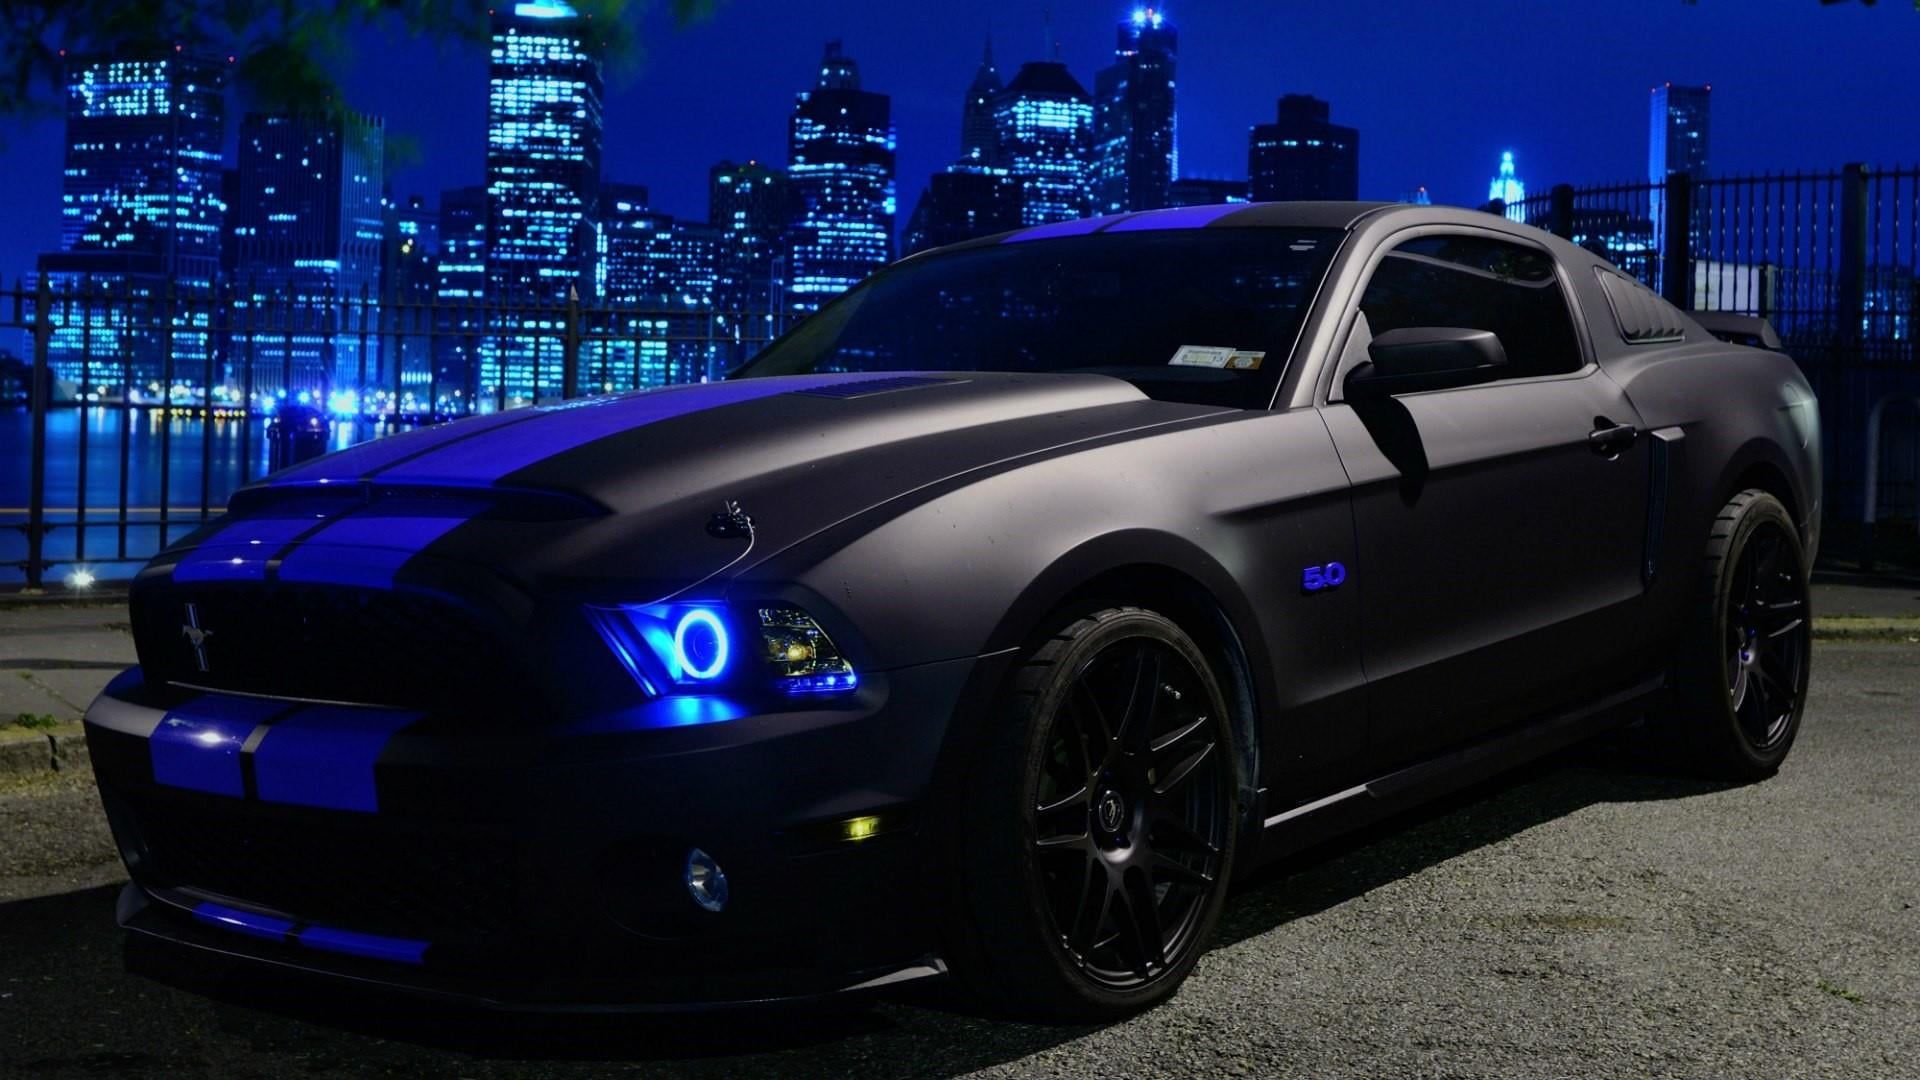 Black Car Car Vehicle Ford Mustang Night City Lights Sports Car Muscle Car Supercar Automotive Exterior Ford Matte Mustang Shelby Shelby Gt Ford Mustang